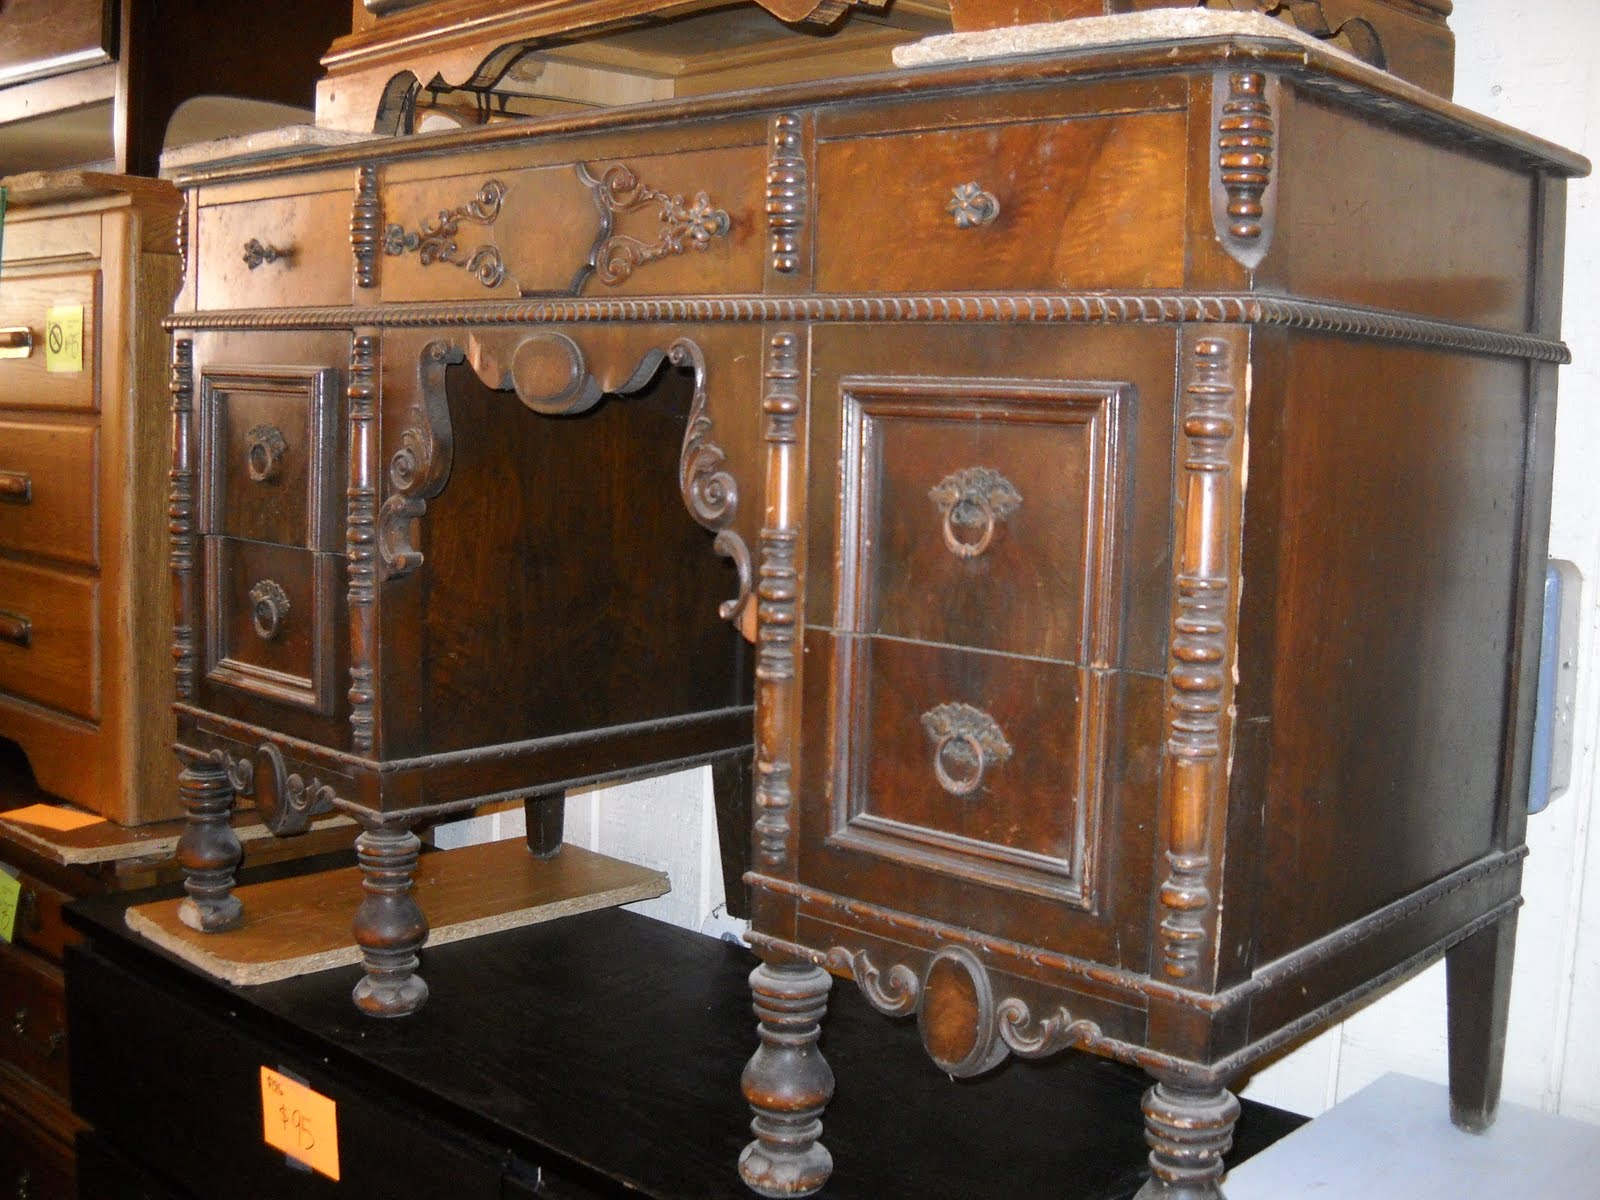 Uhuru Furniture & Collectibles: Ornate 1930s Desk SOLD